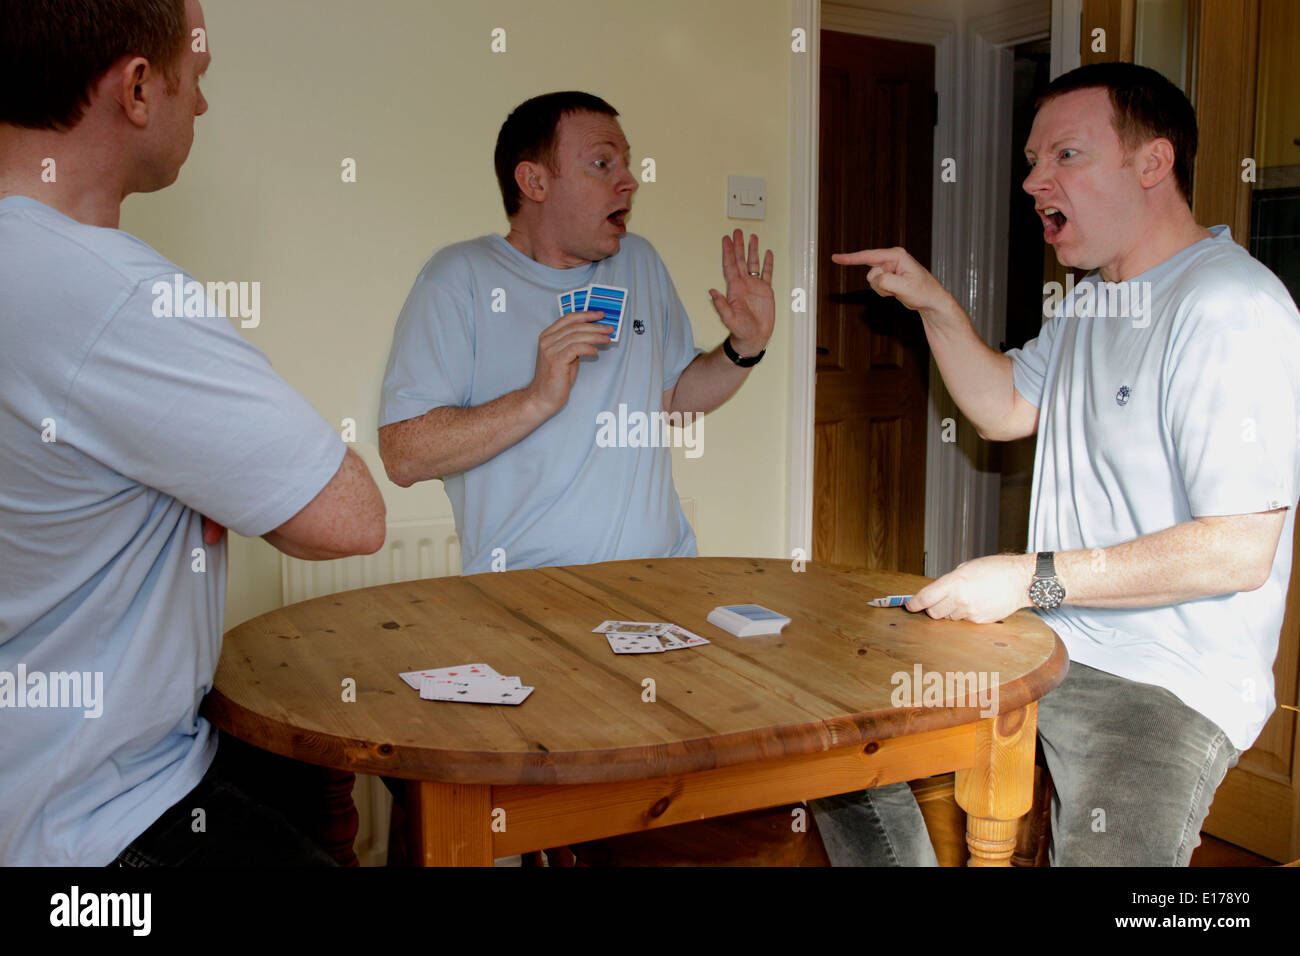 A funny card cheating scene featuring the same person three times - Stock Image